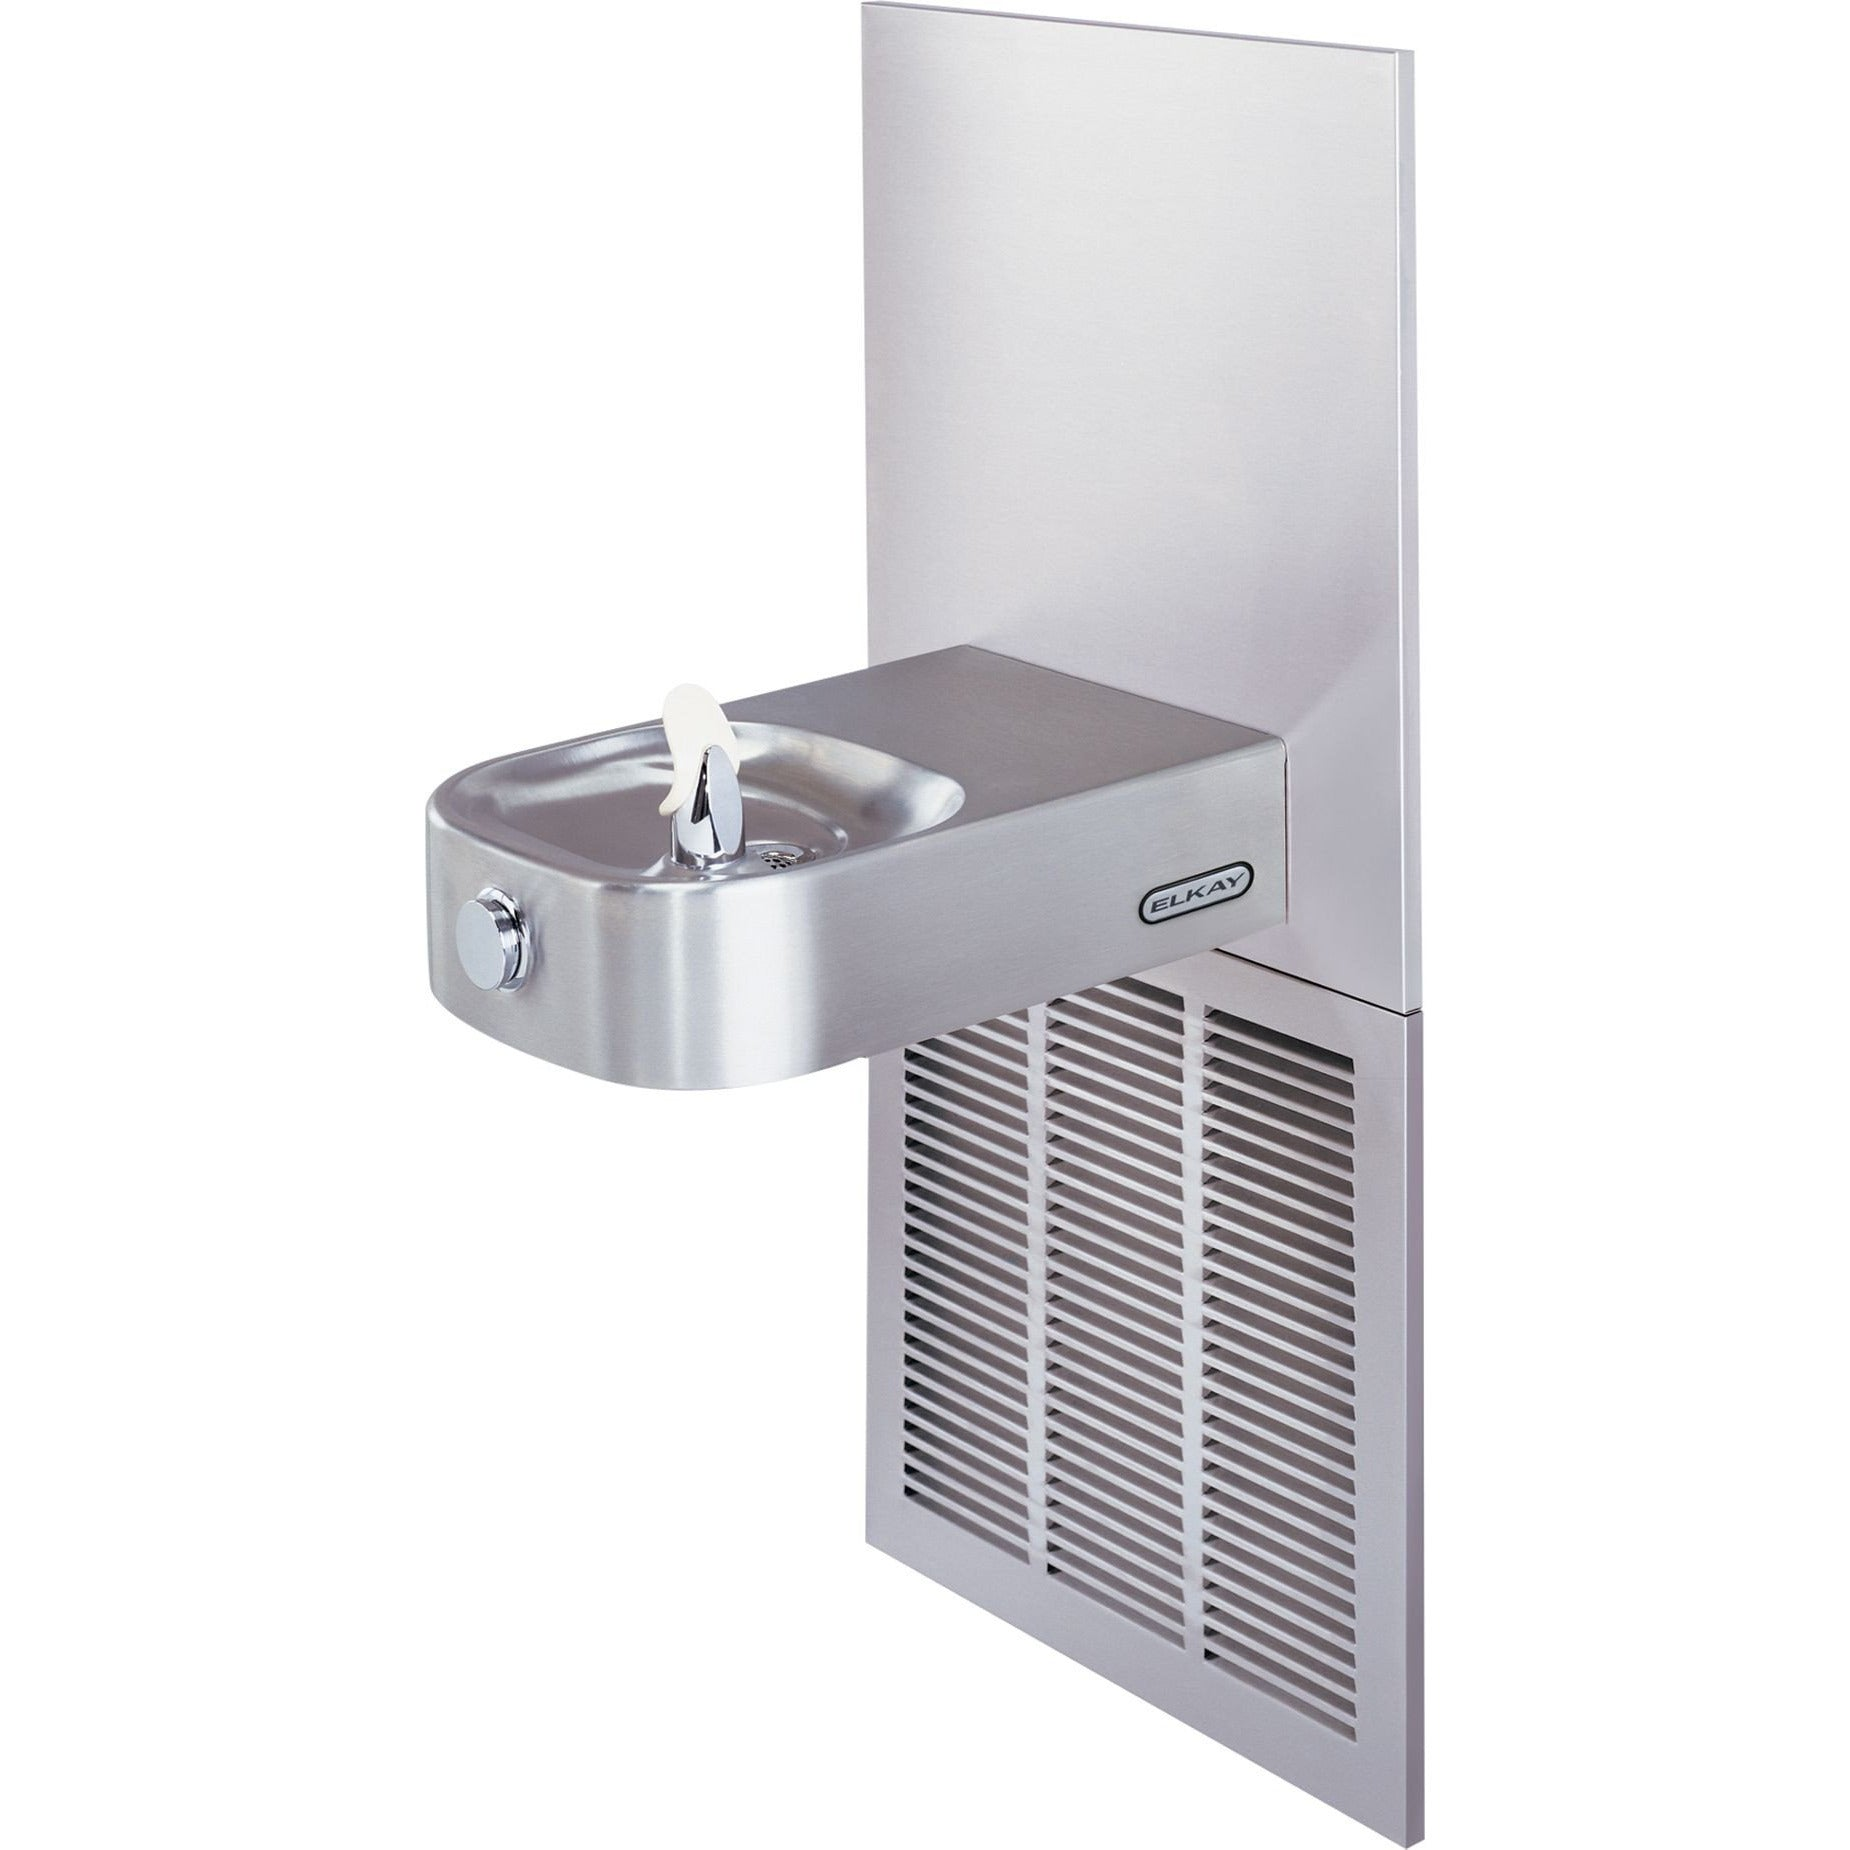 Elkay ECRSPM8K | In-wall Slimline Soft-sides Drinking Fountain | Filterless, Refrigerated (Comes with Mounting Frame) - BottleFillingStations.com